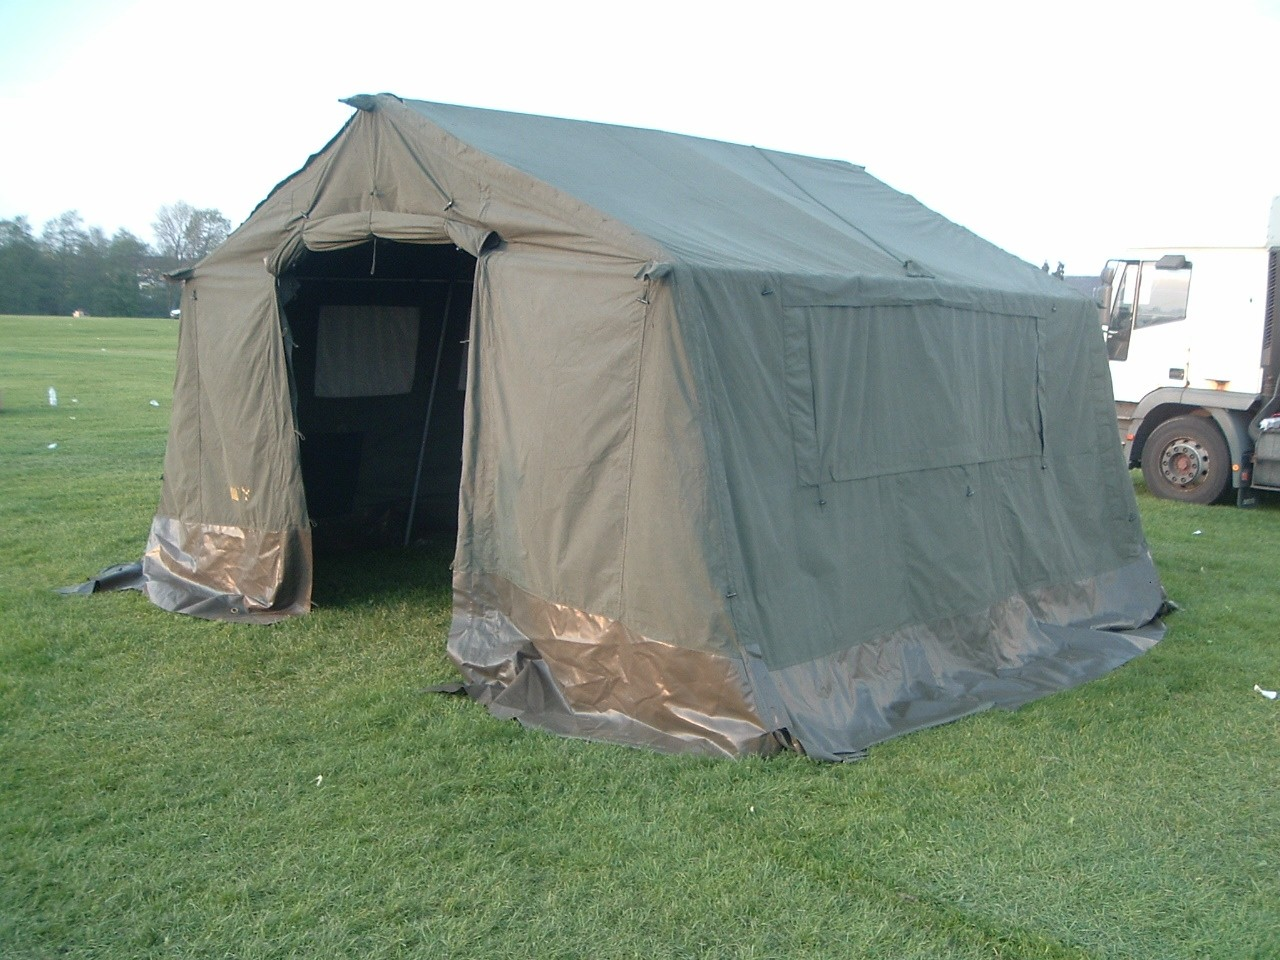 12x12 Ex British Army Catering Frame Tent (AKA 15x12) Super